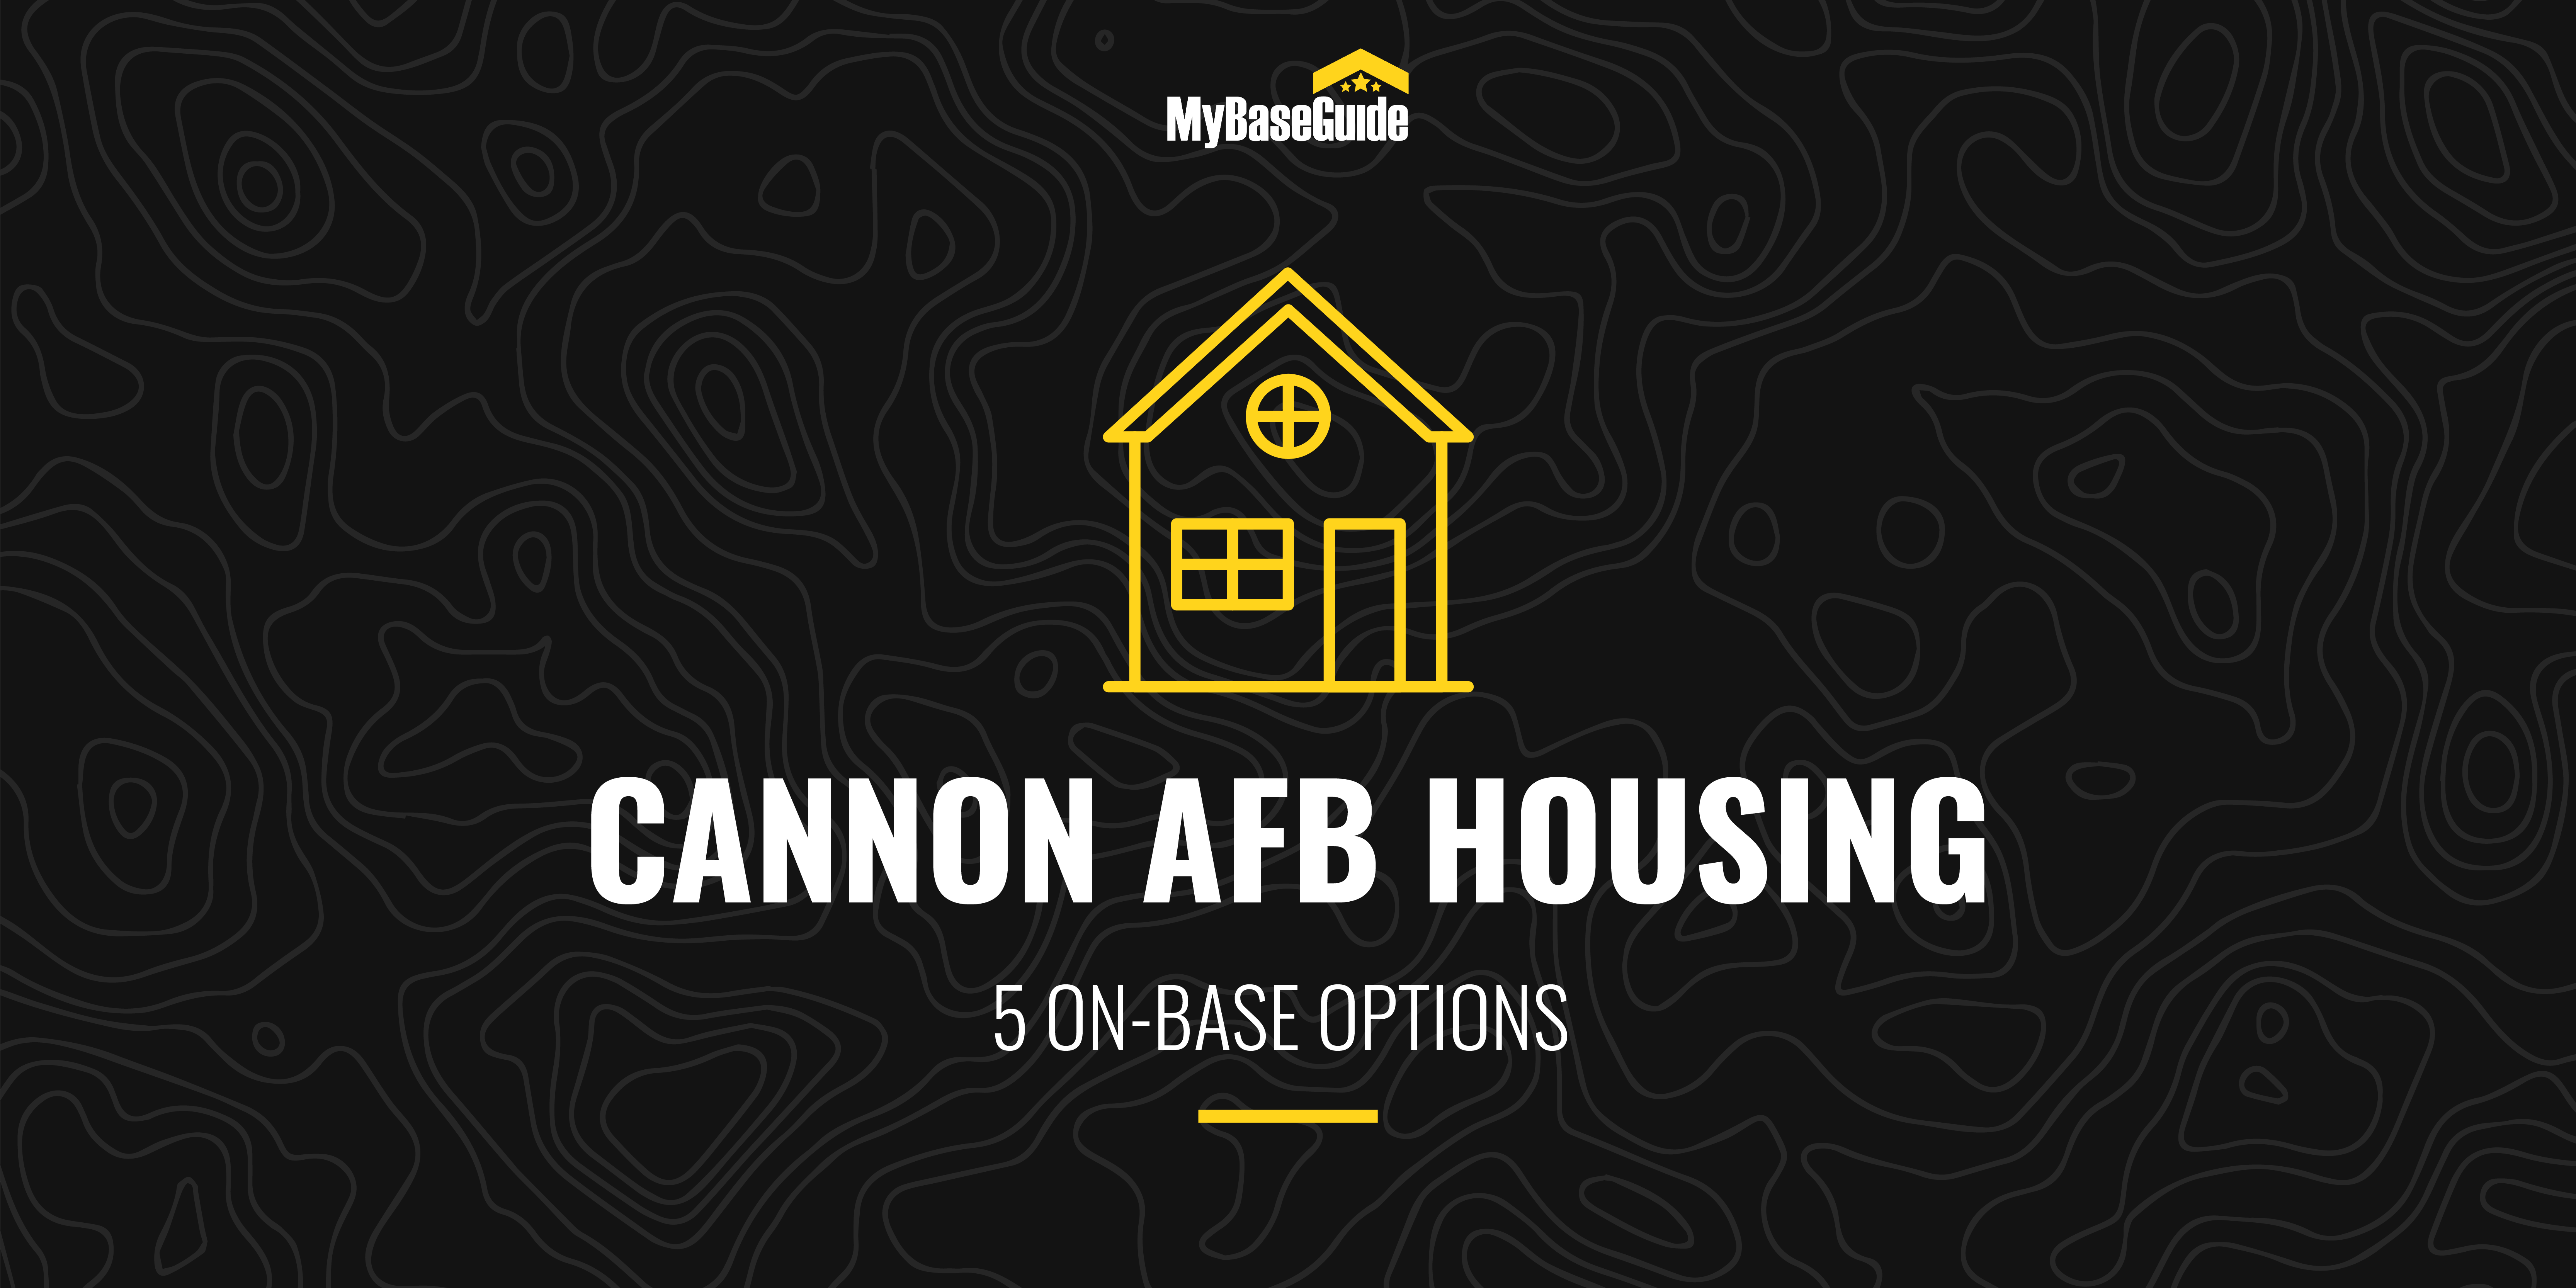 Cannon AFB Housing: 5 On-Base Options